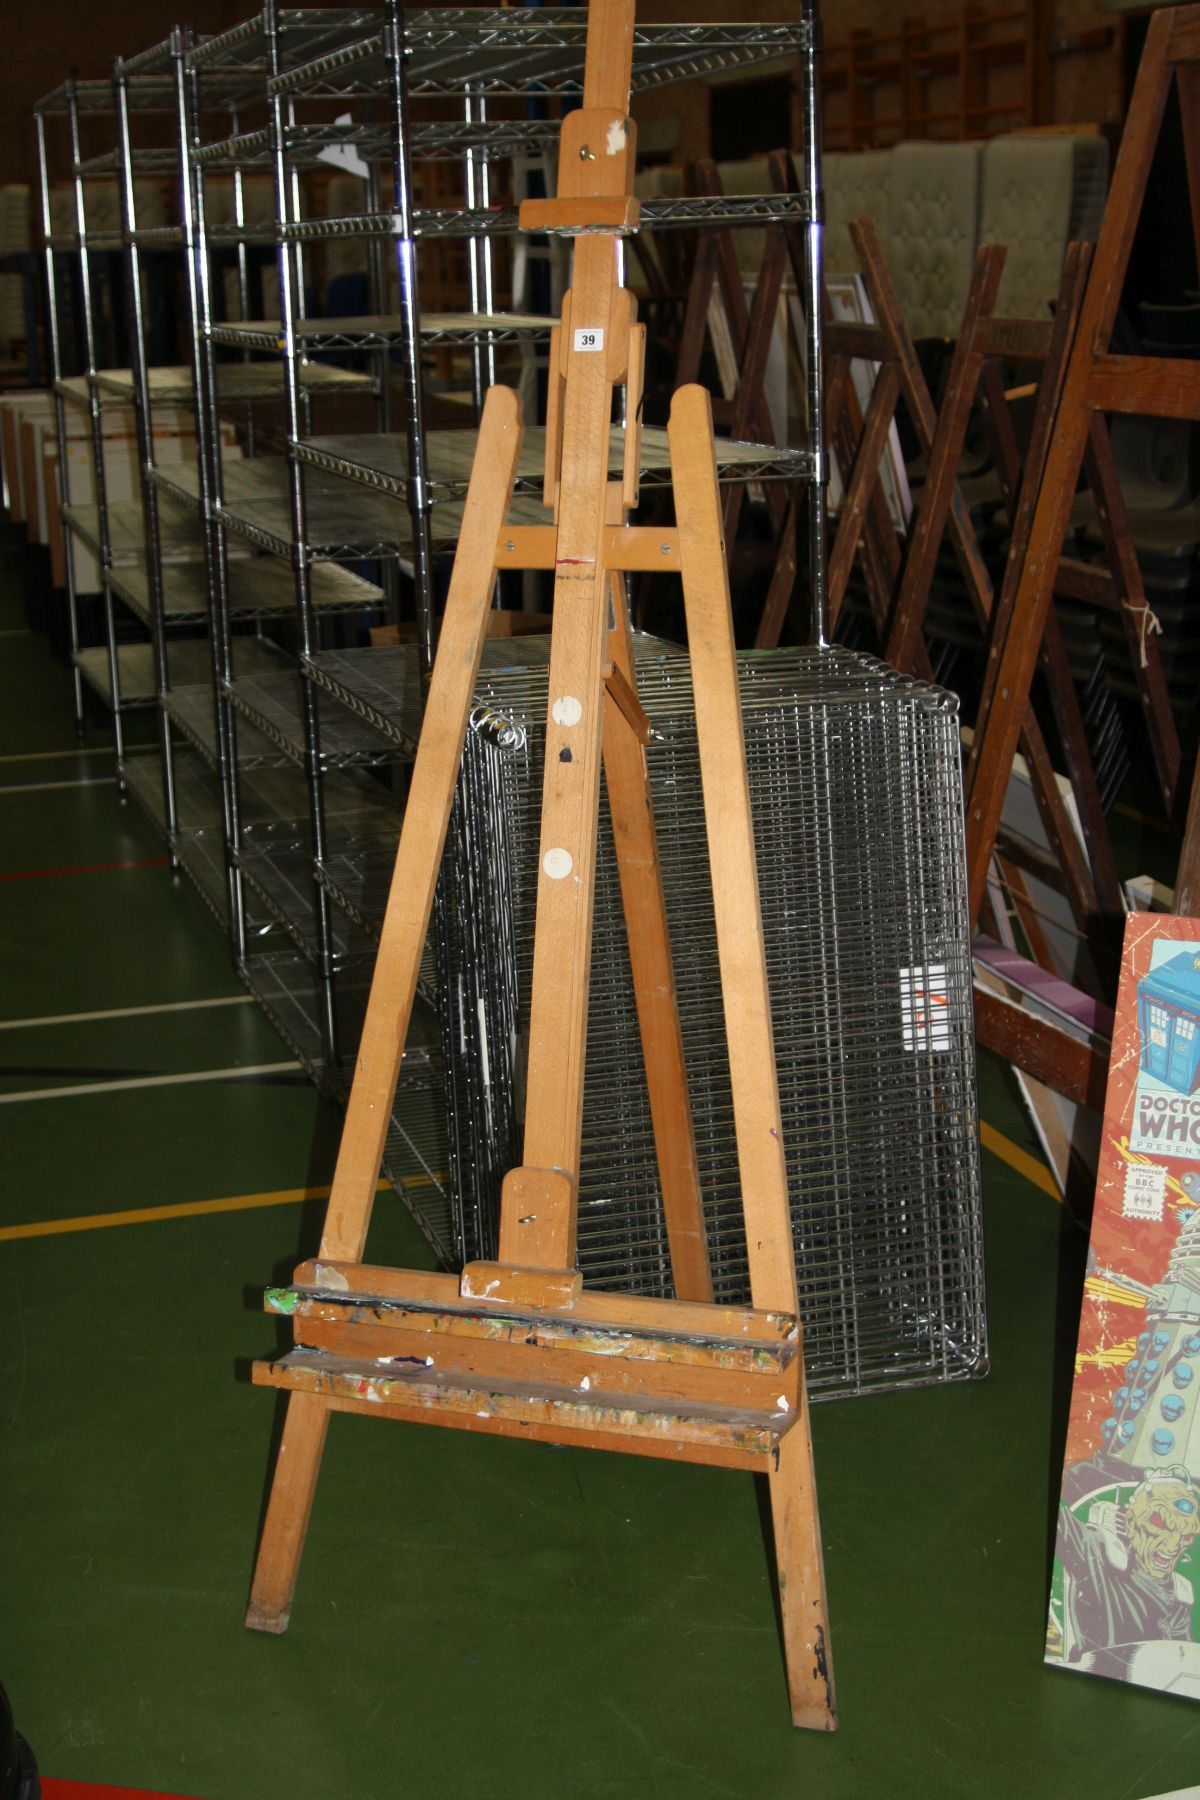 Lot 39 - A MODERN BEECHWOOD FULLY ADJUSTABLE FOLDING ARTISTS EASEL, height adjustable from 170cm to 240cm (